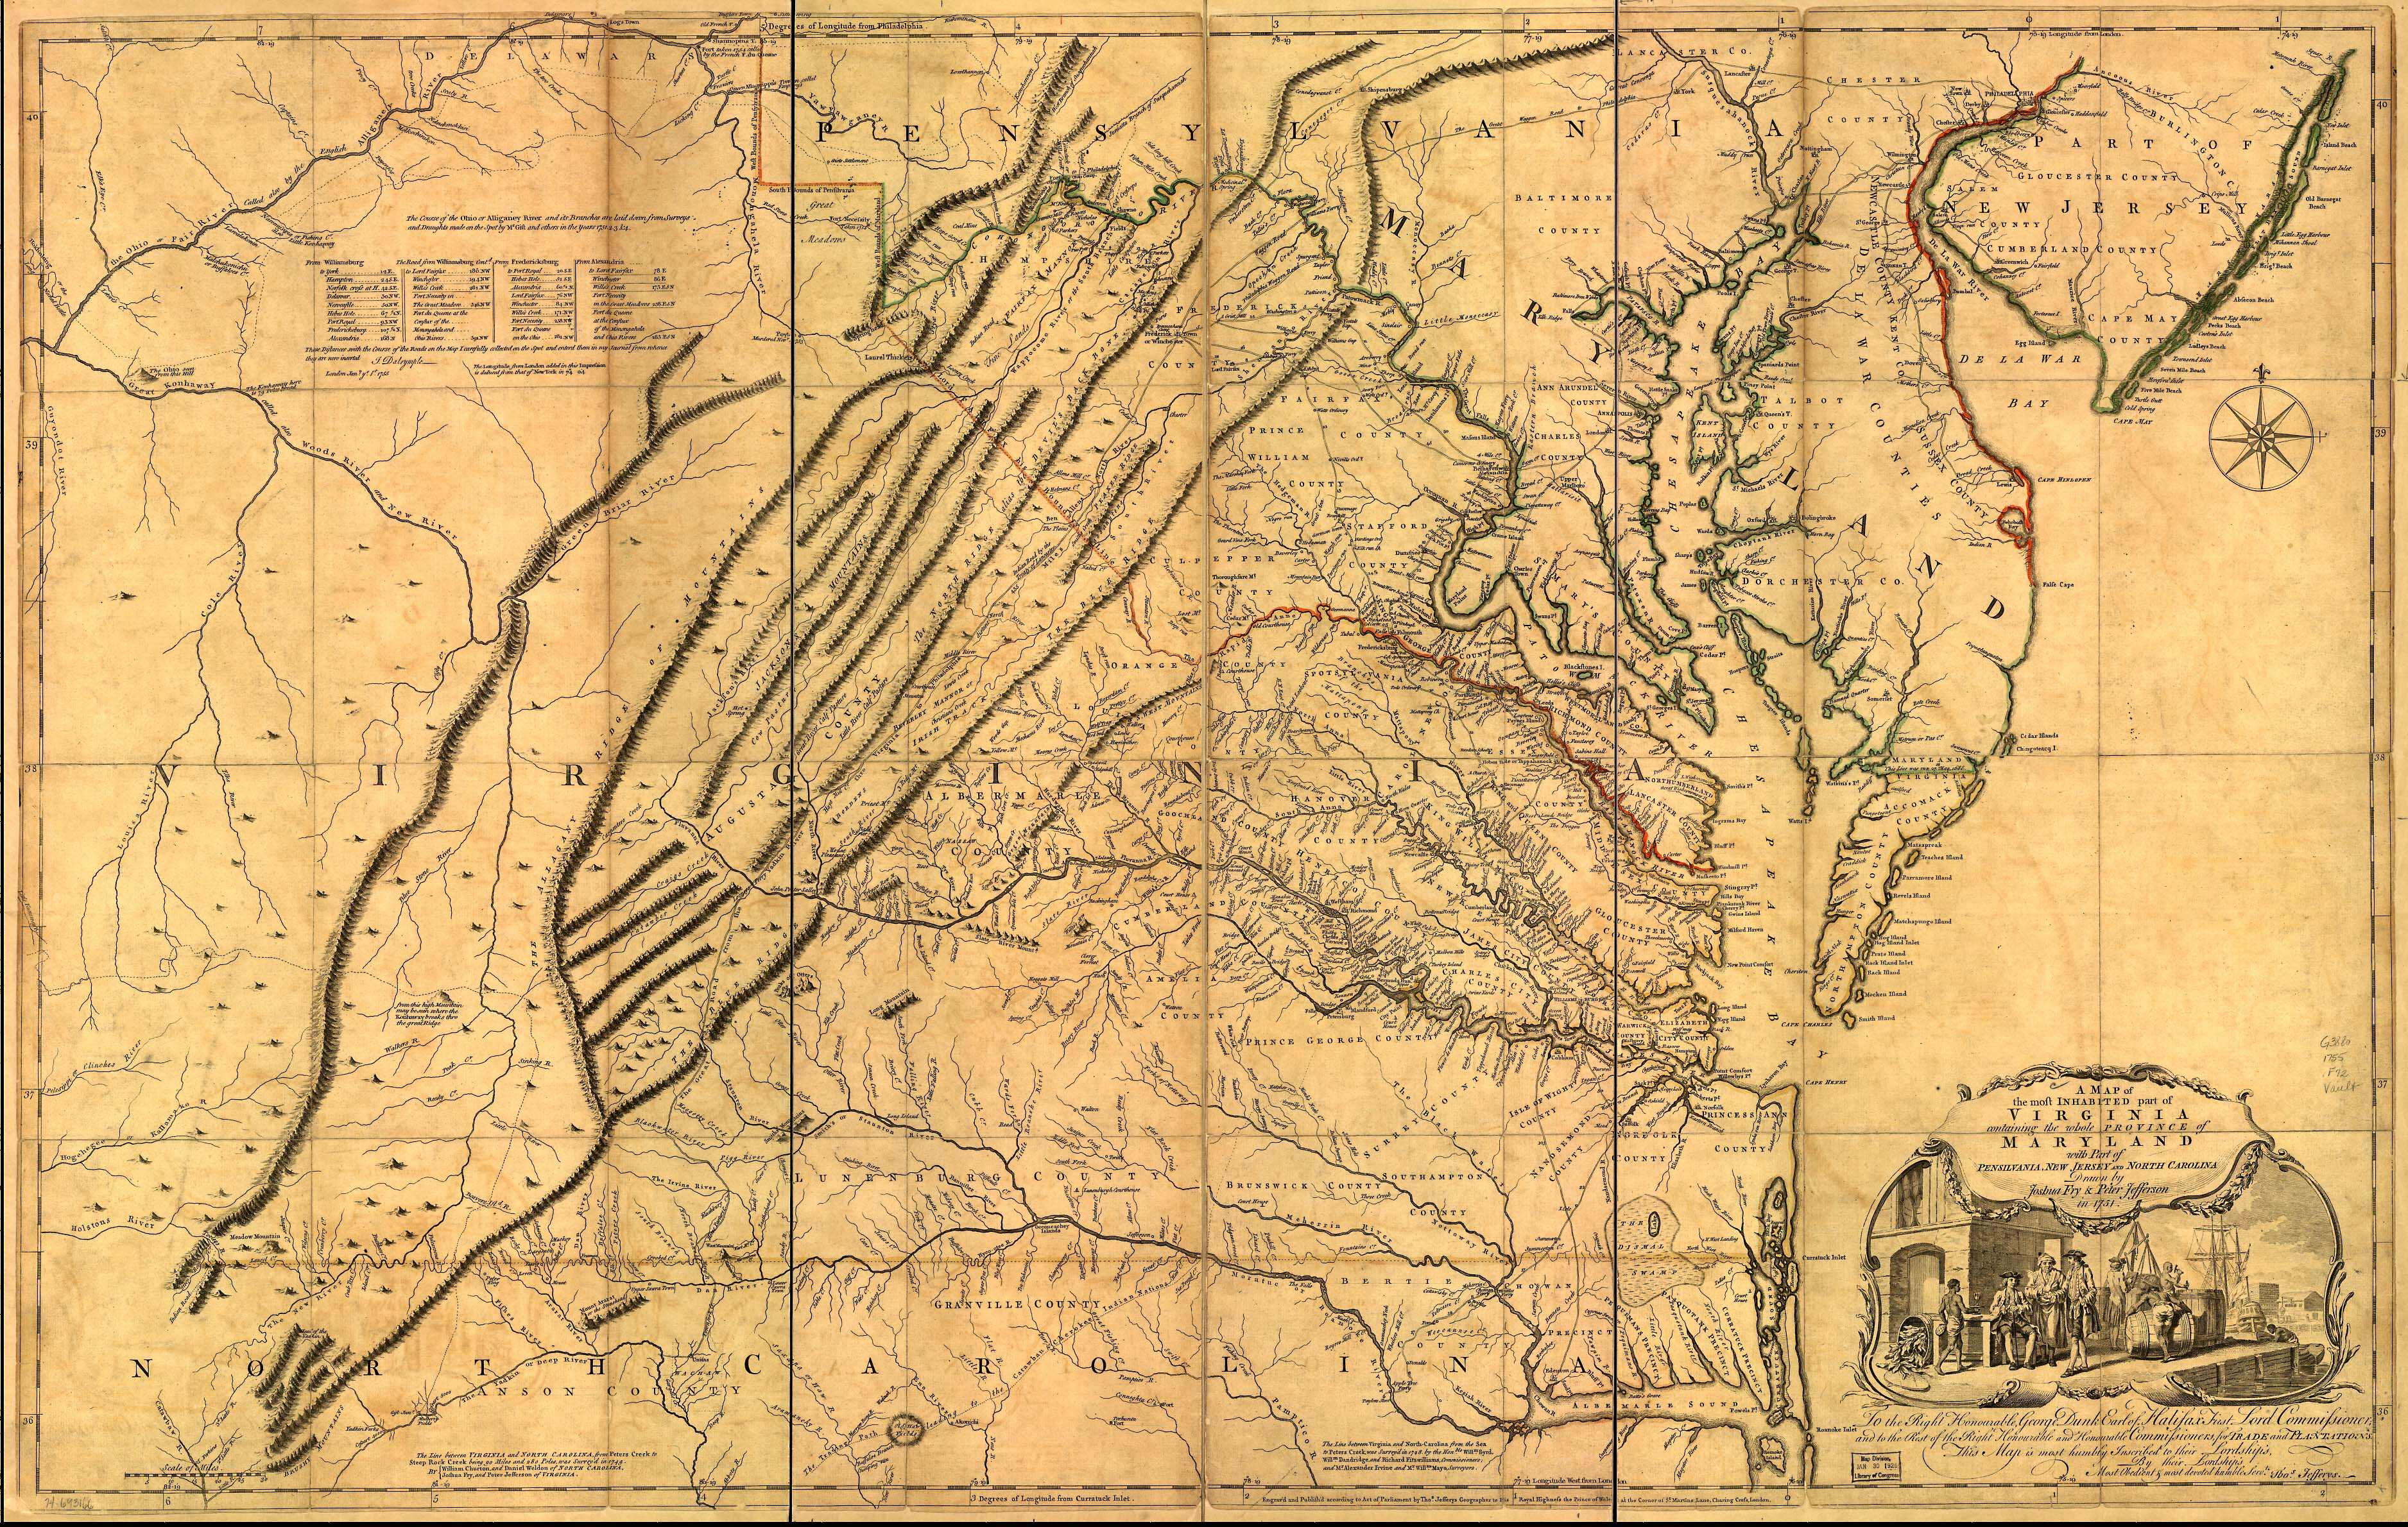 NORTH CAROLINA MAPS - 1800s map of us